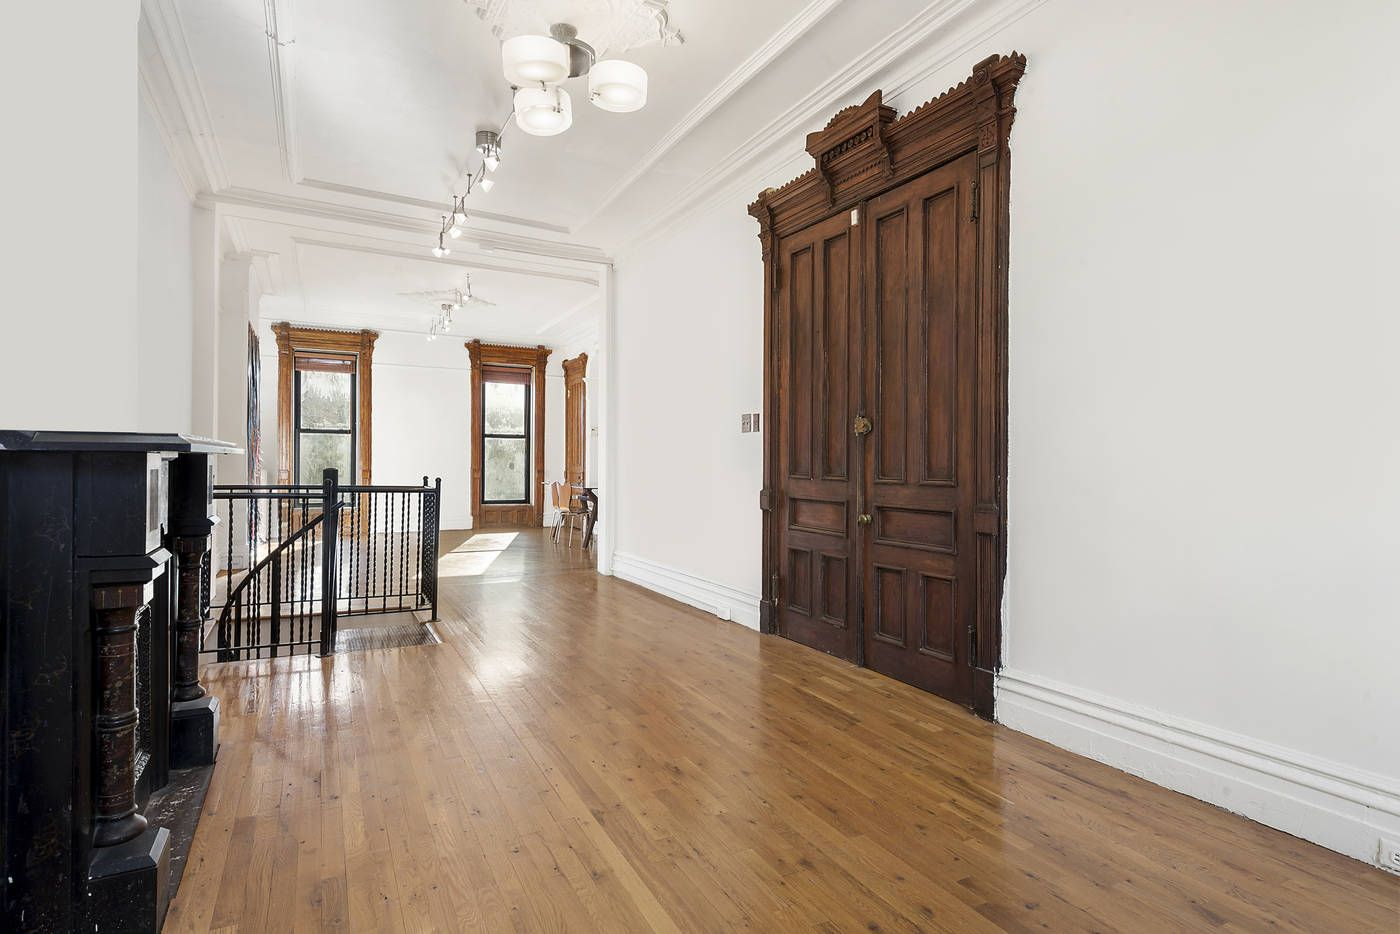 Bed Stuy Brooklyn Apartment for Rent at 410 Jefferson Ave